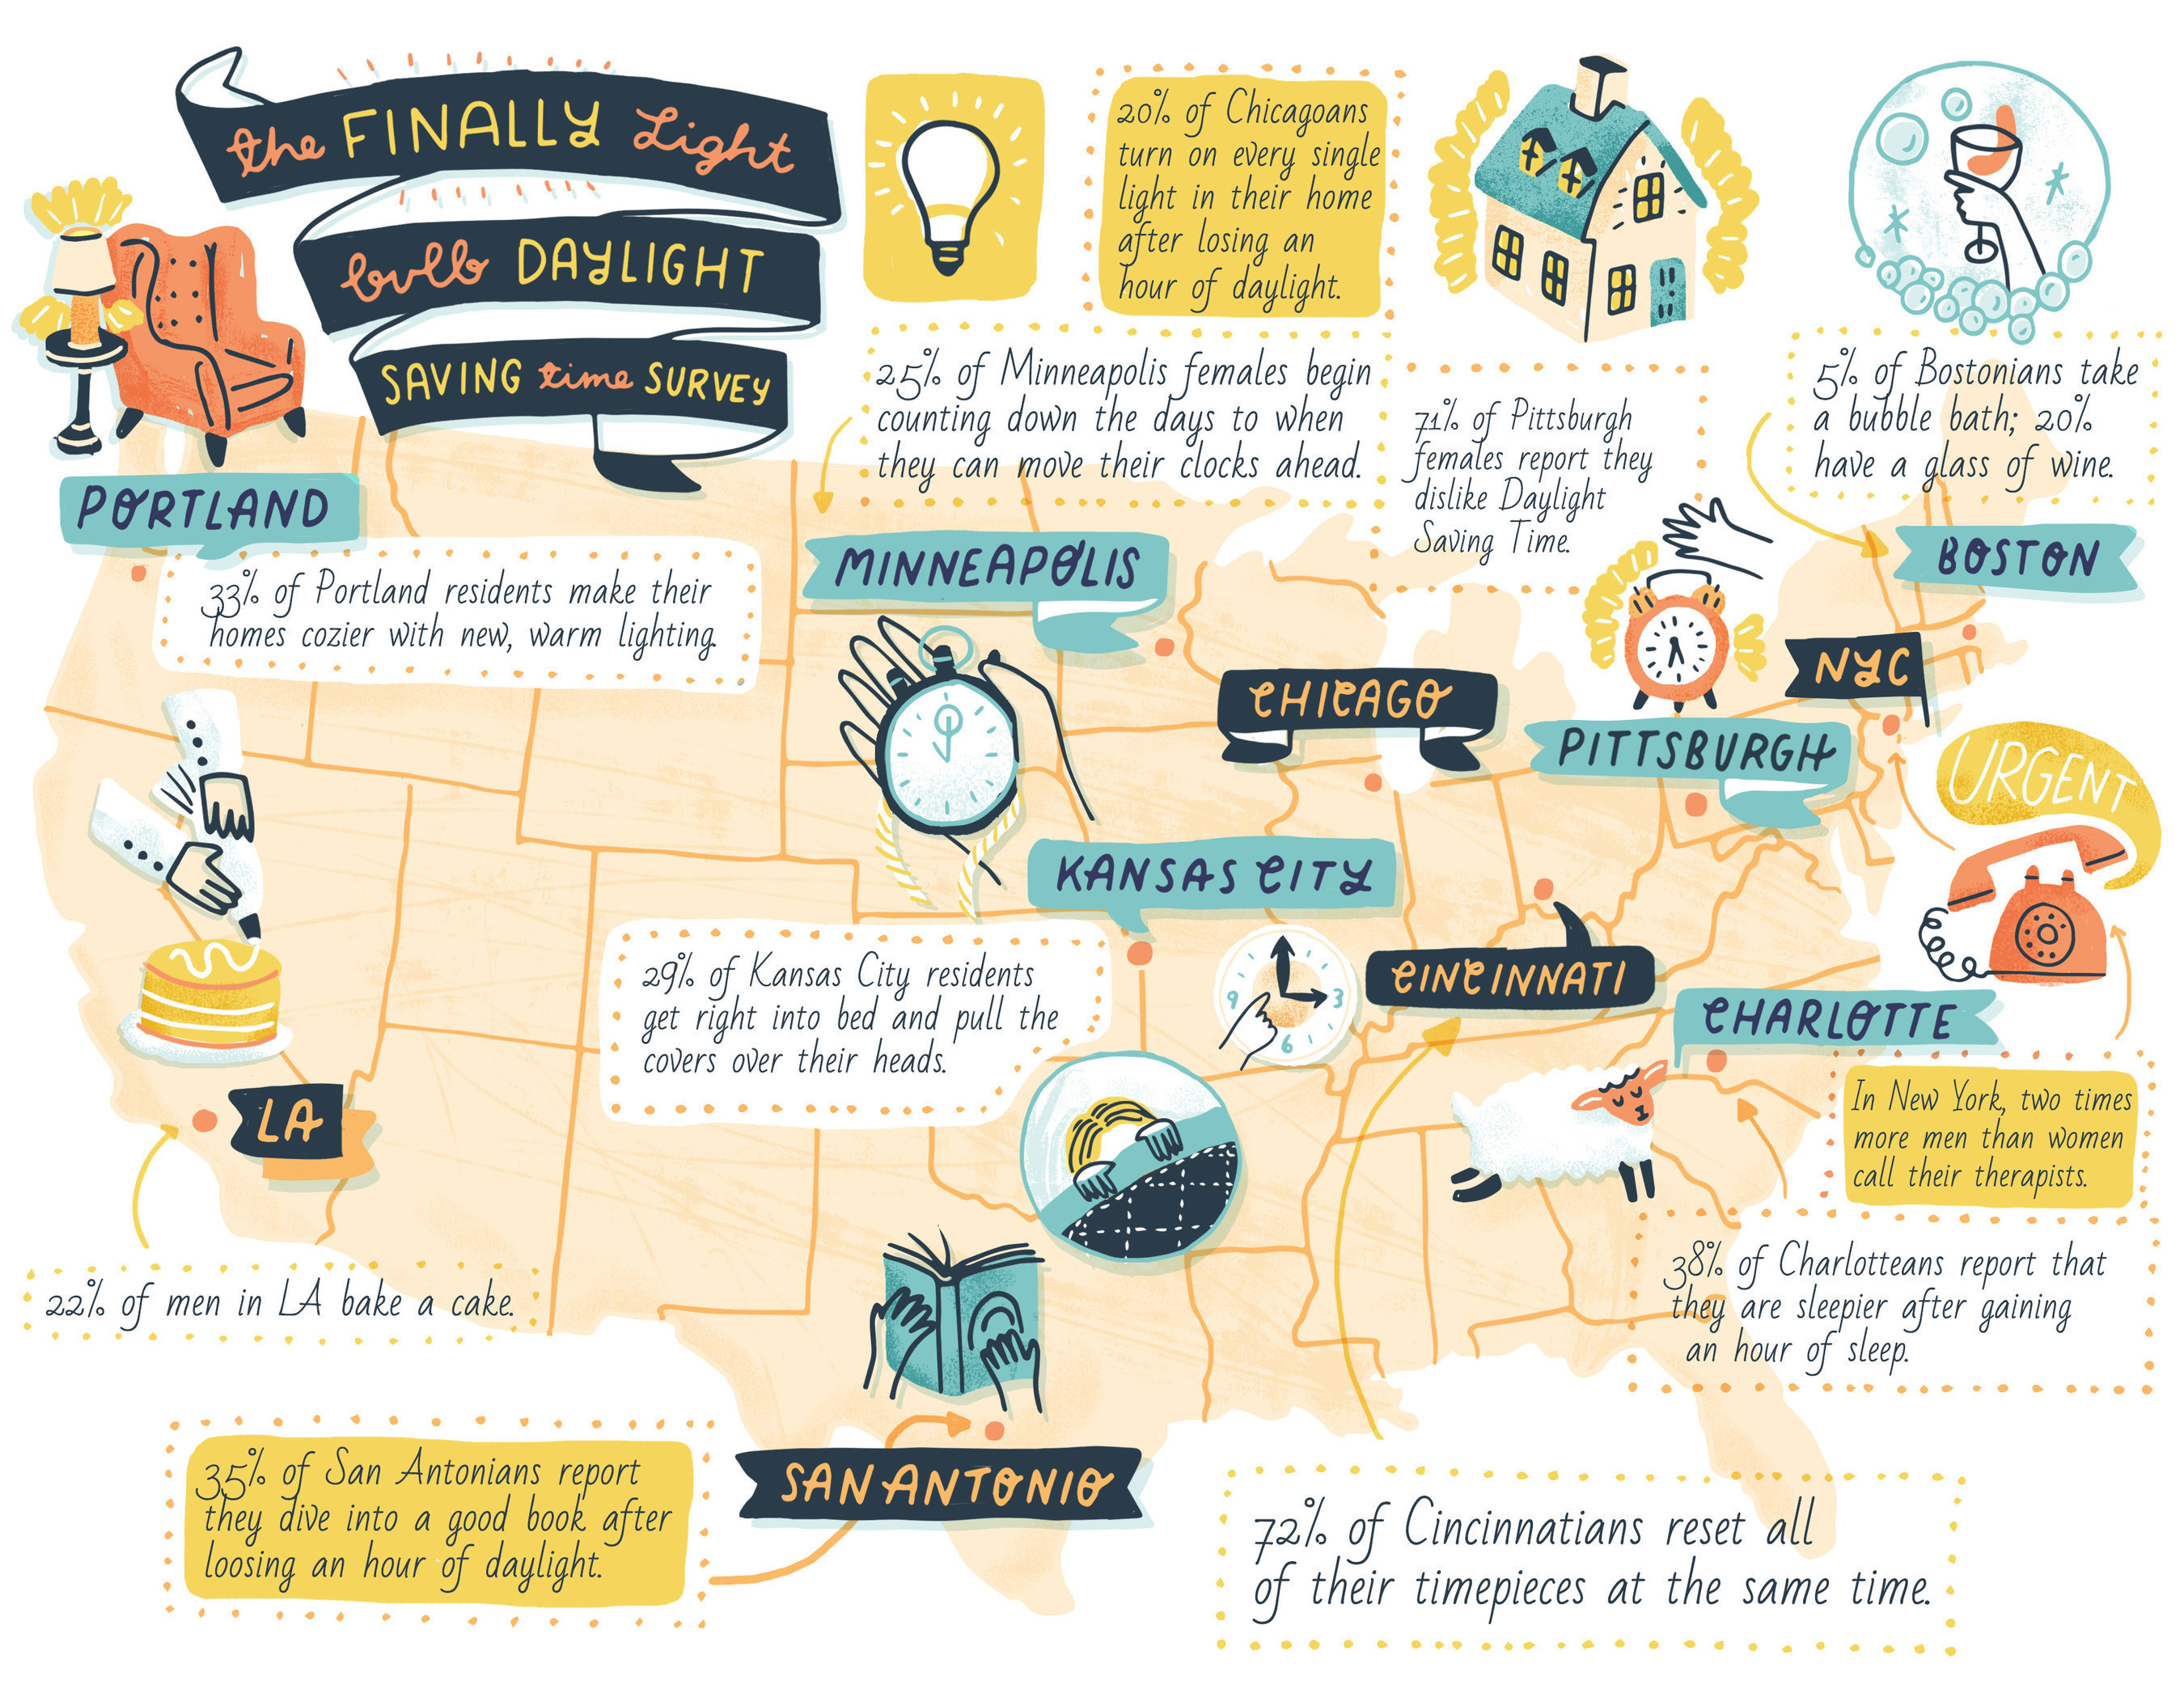 The Finally Light Bulb Company conducted an 11-city survey to ascertain how Americans deal with Day Light Saving Time. The above infographic includes highlights from each city.